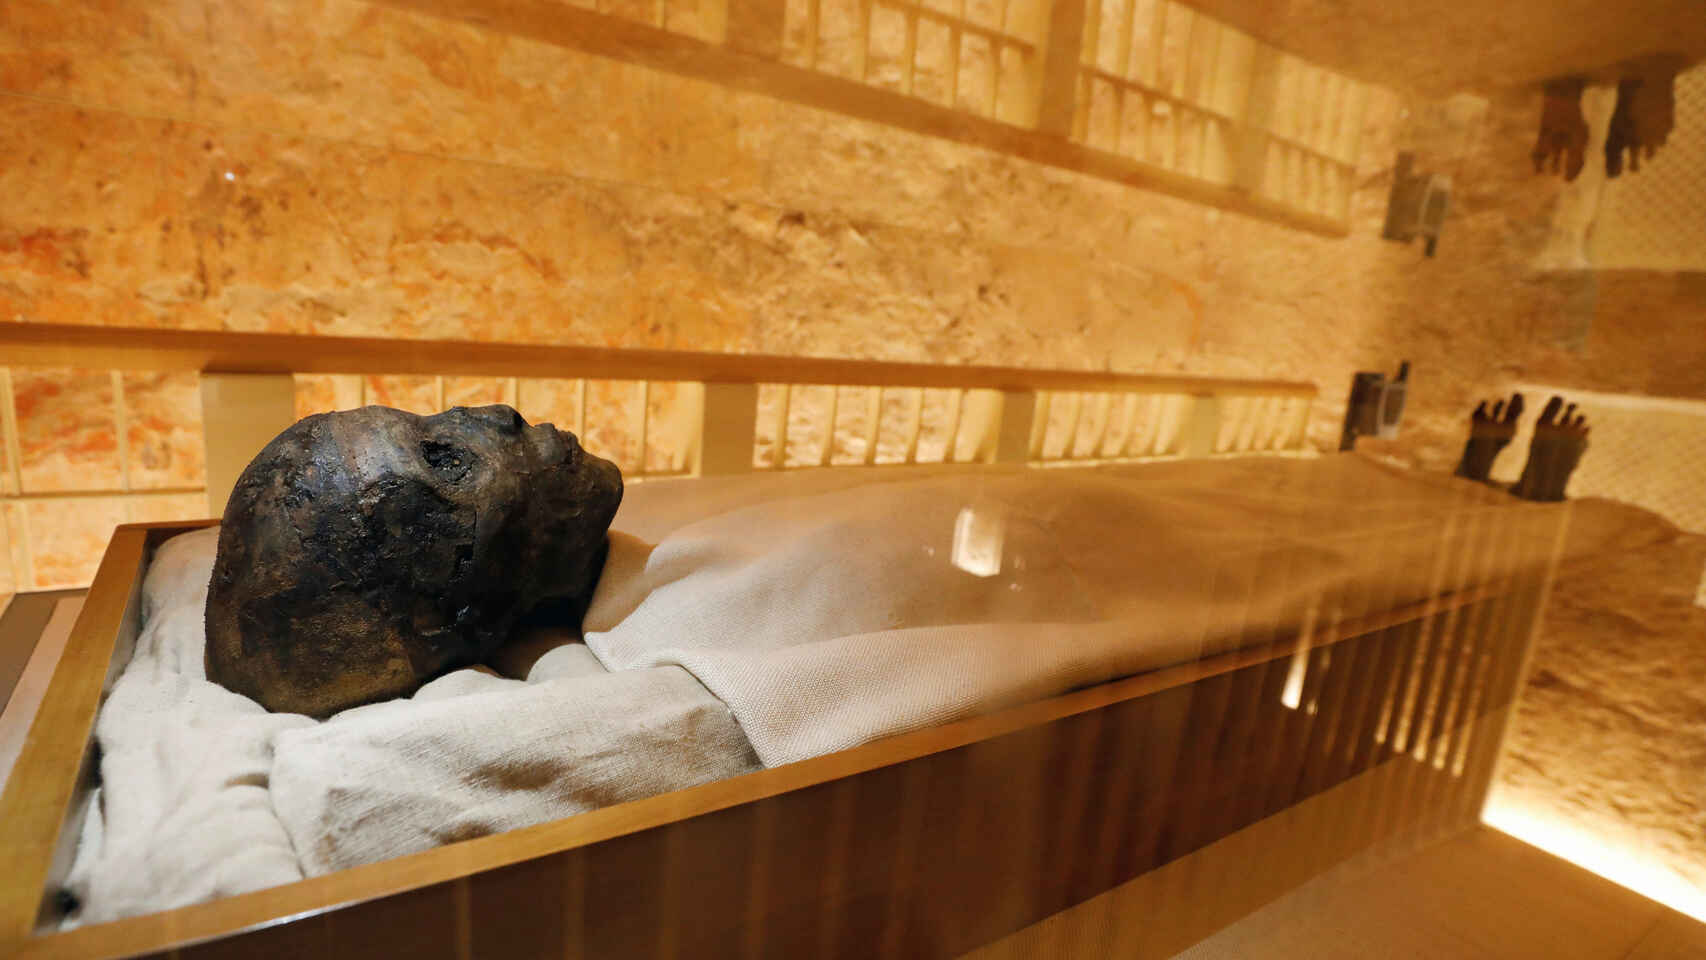 Ancient Egyptian scroll discovered revealing new secrets about mummification